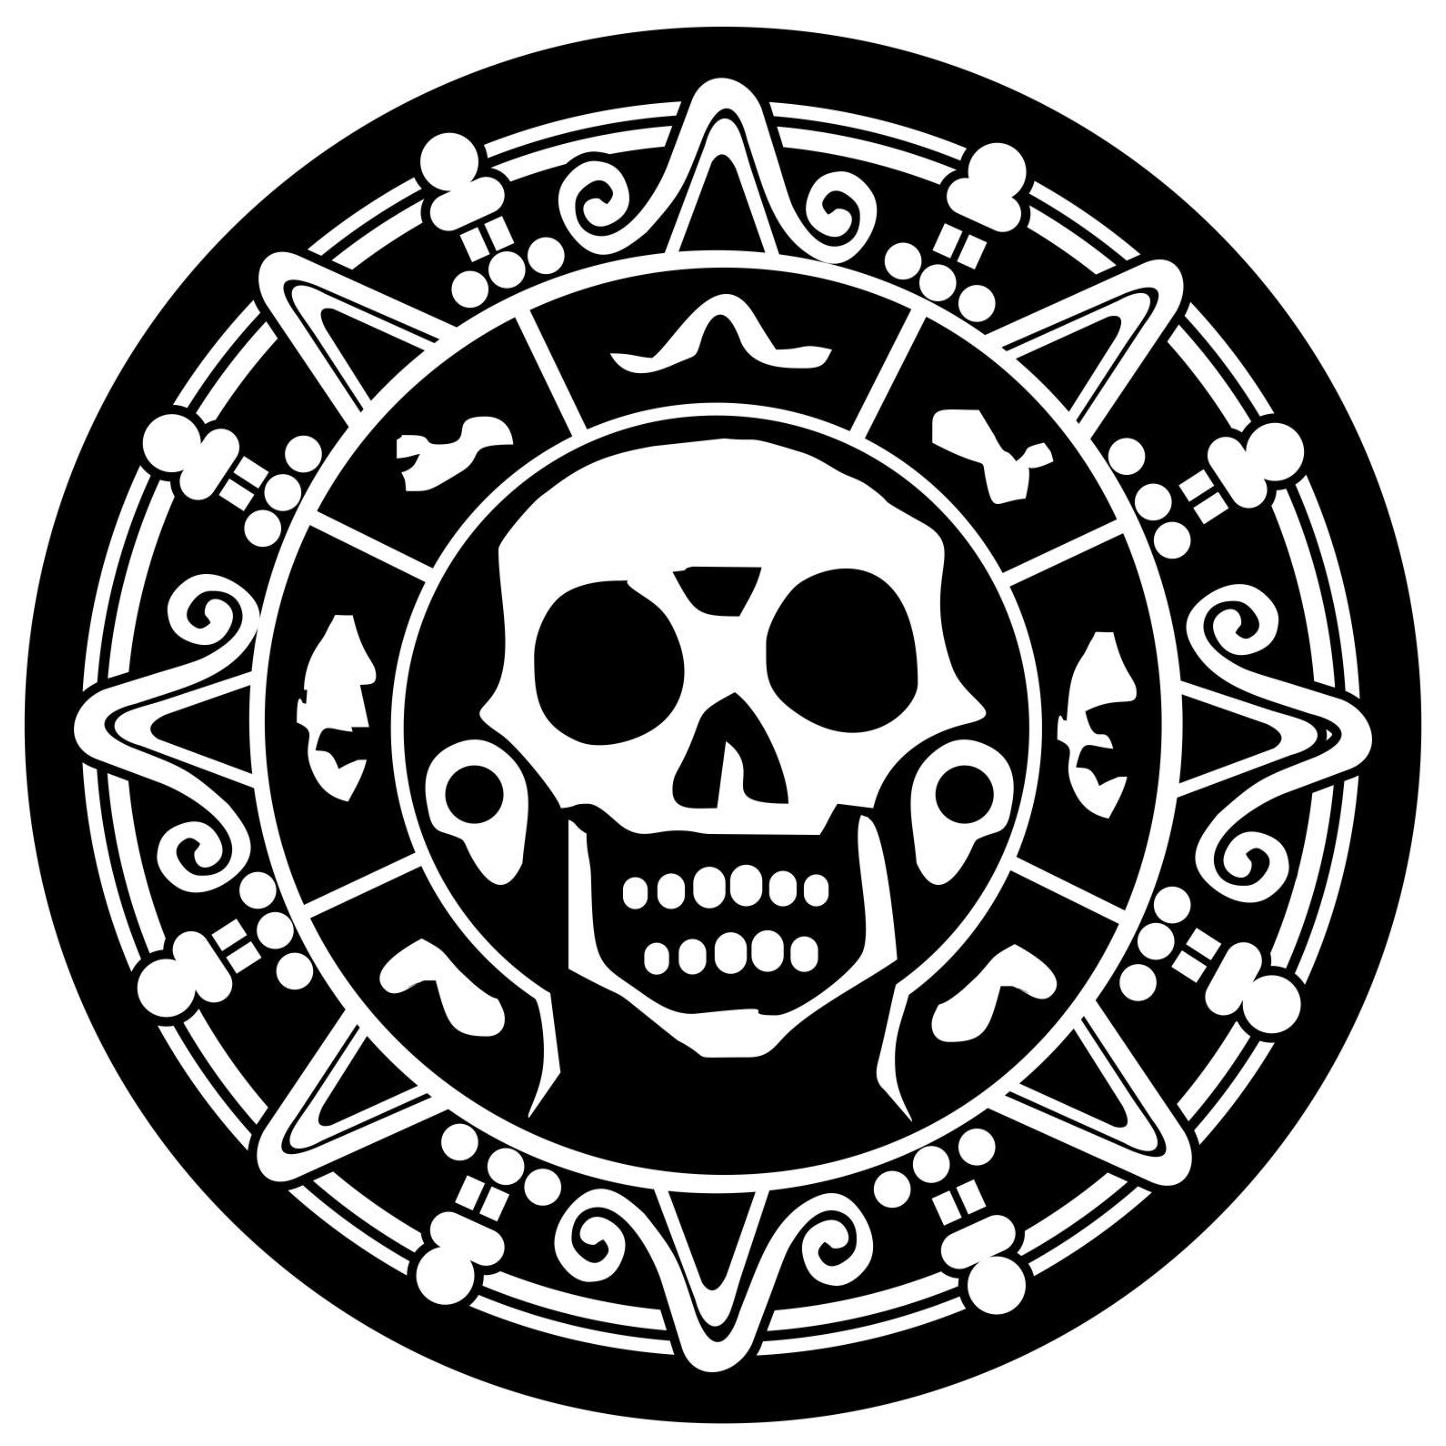 Pirate Skull Medallion decal sticker car truck window lap top Many Colors Vinyl Hobby Car Bumper Sticker